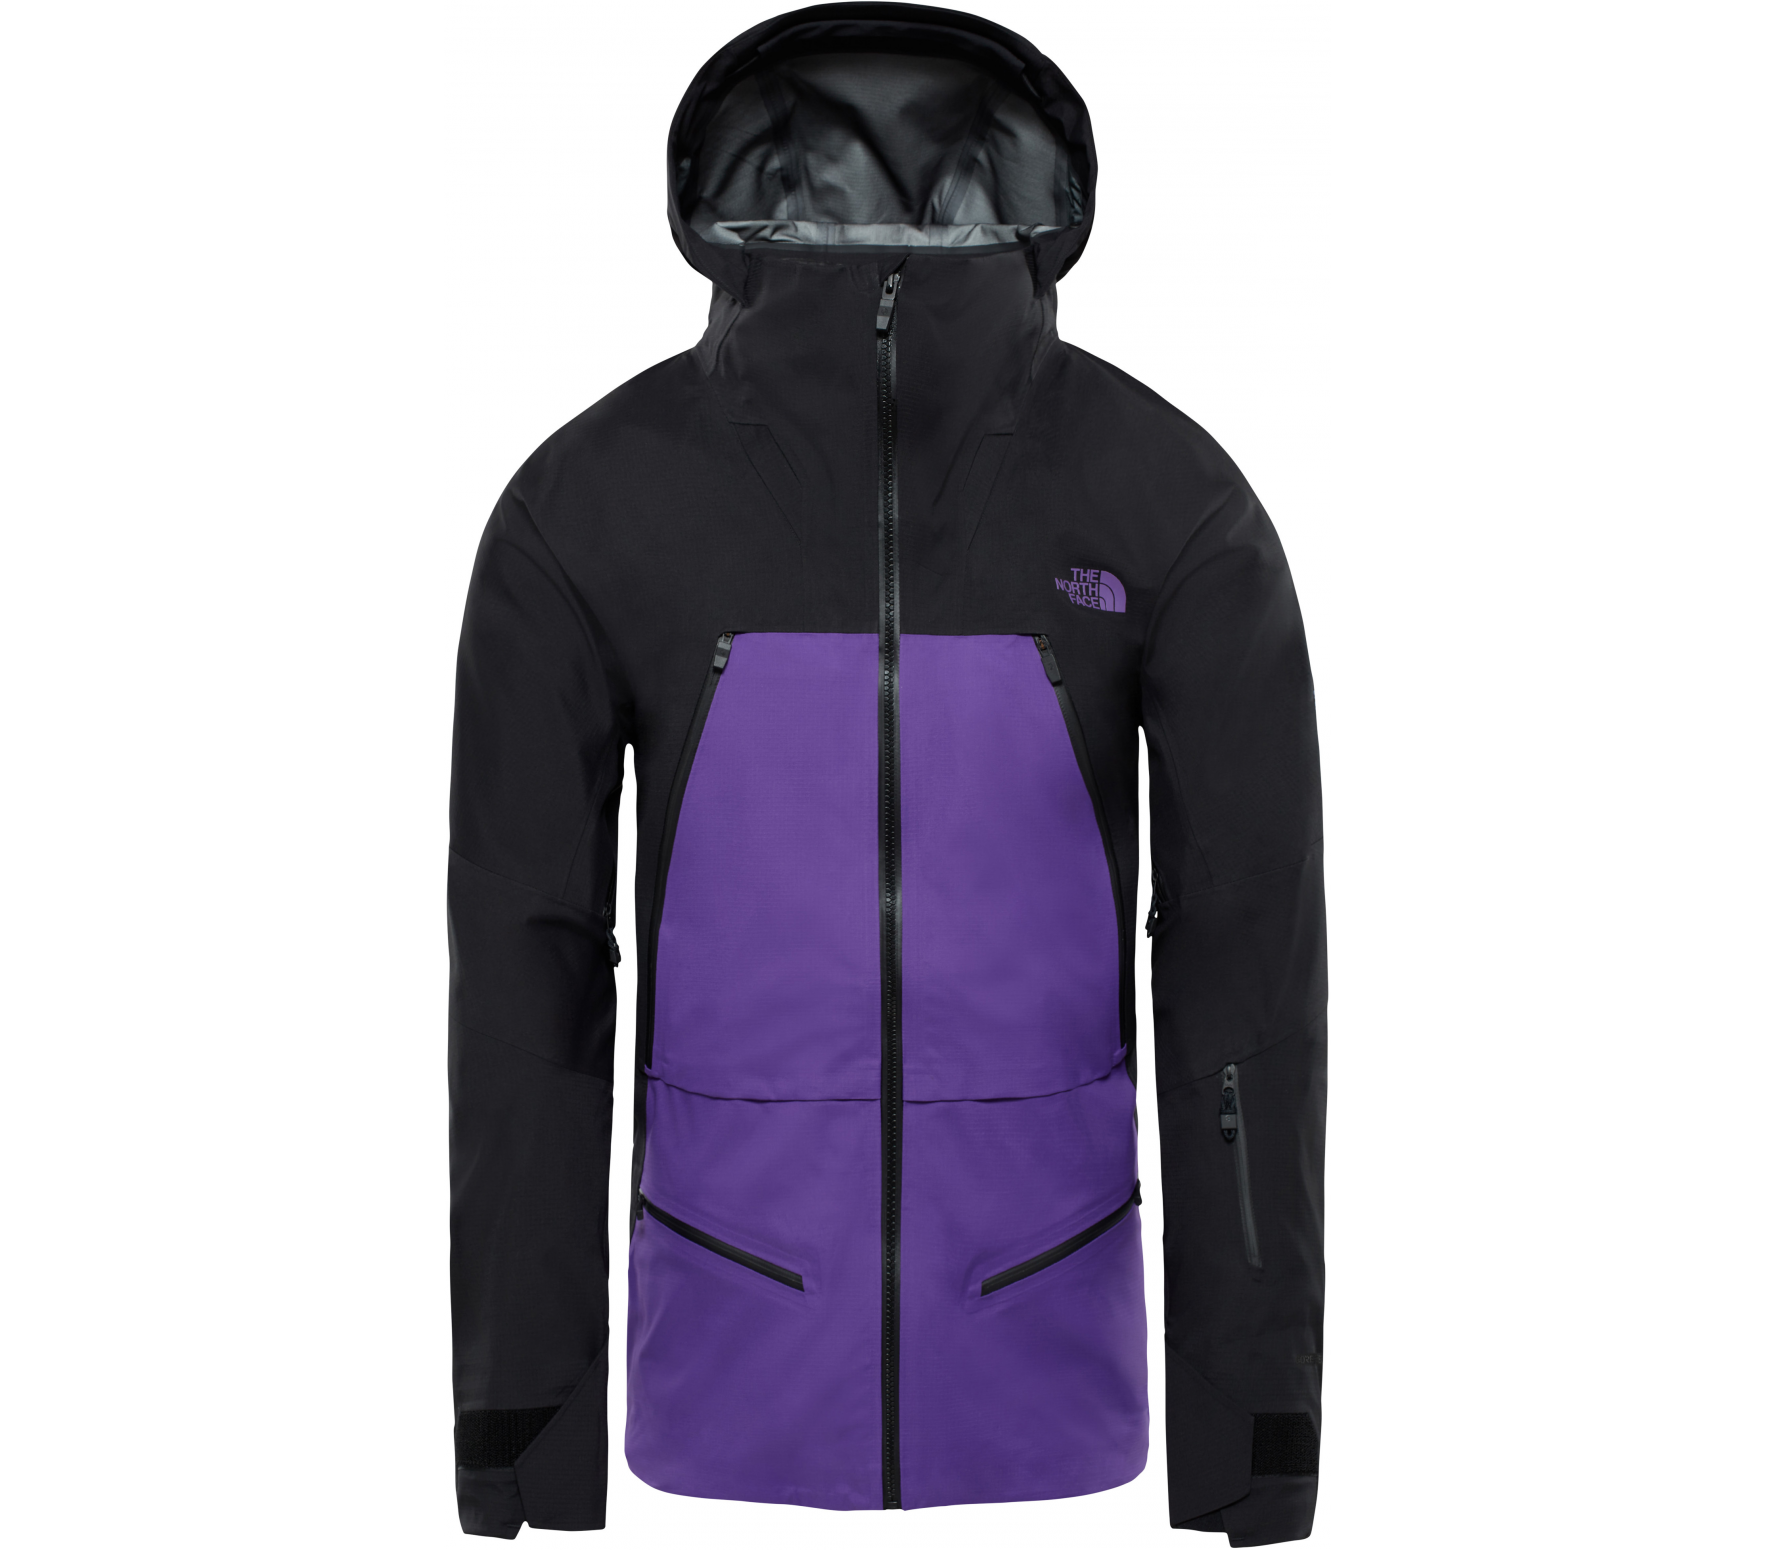 126f3b36253703 The North Face - Purist Herren Skijacke (schwarz lila) im Online ...